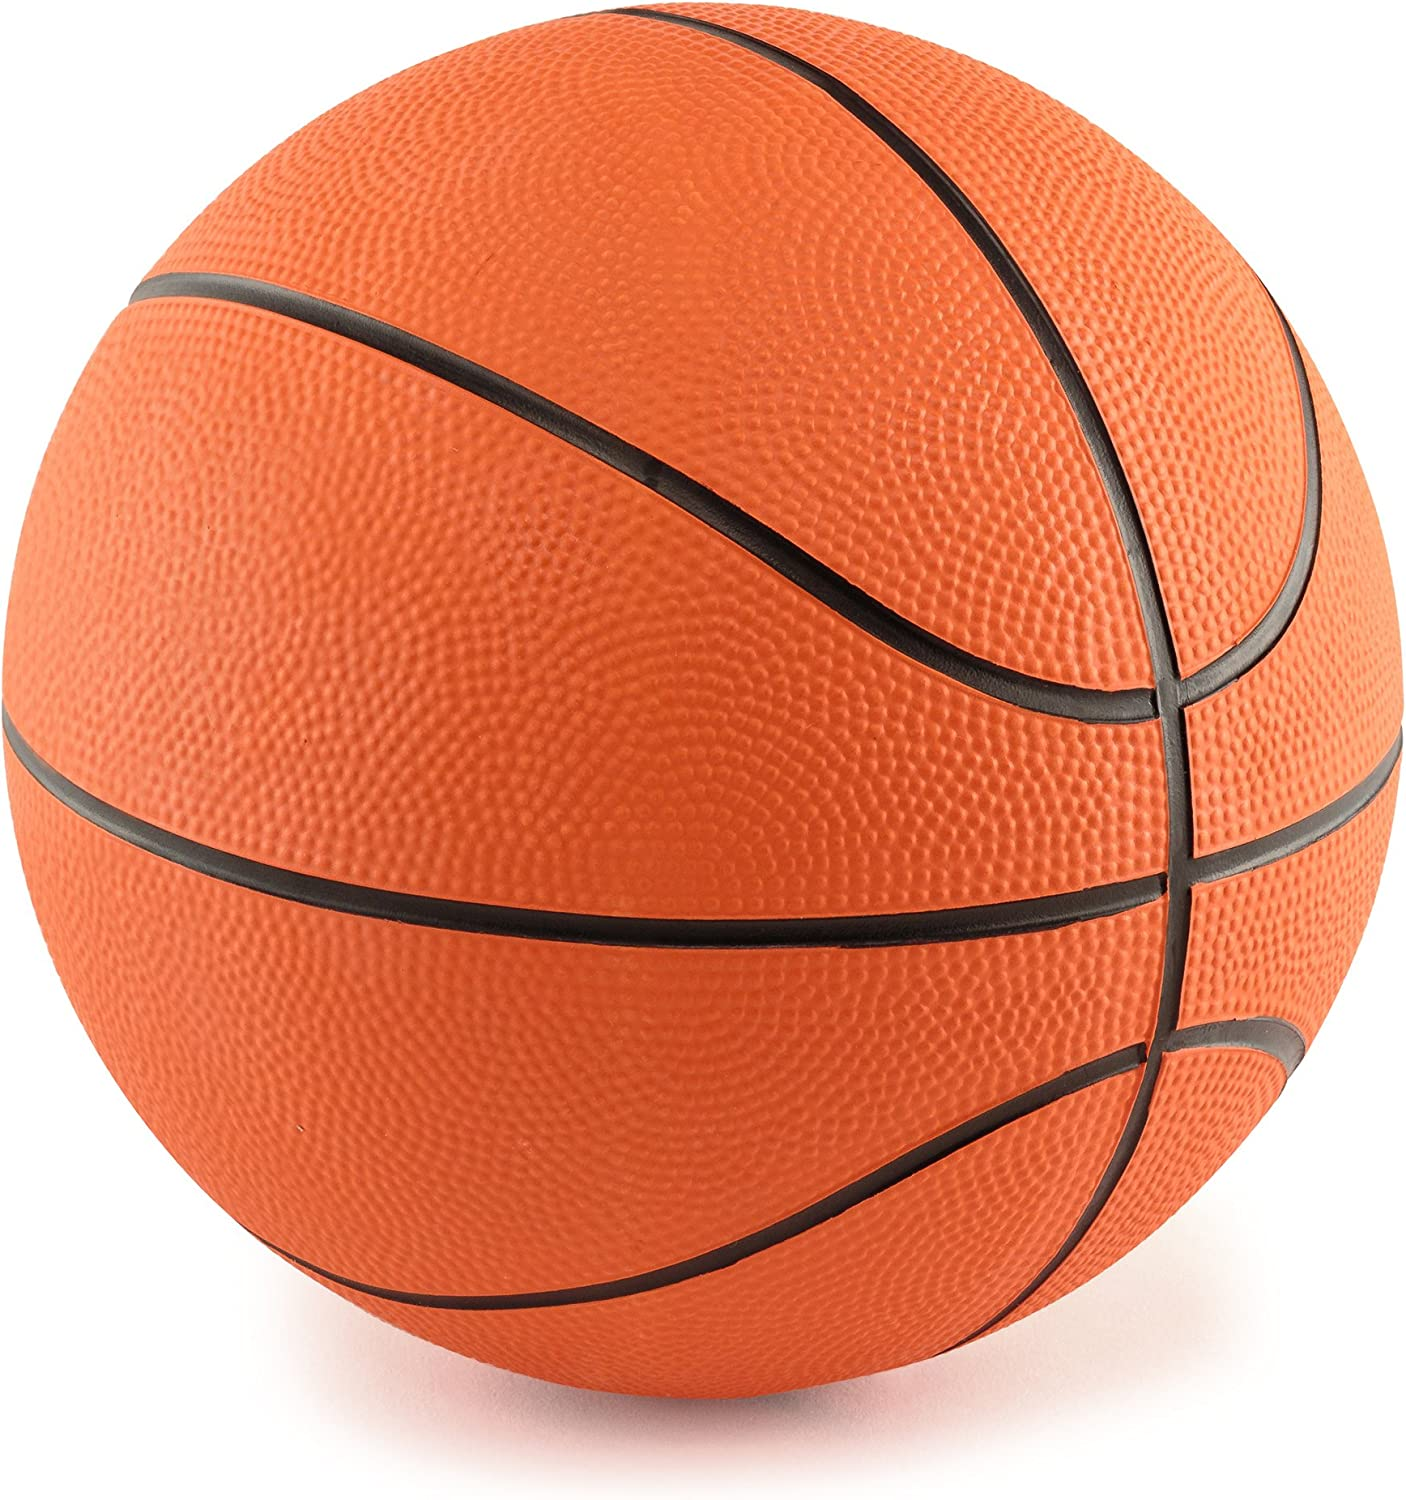 Edgewood Toys 5-Inch Mini Rubber Basketball Indoor/Outdoor Use.